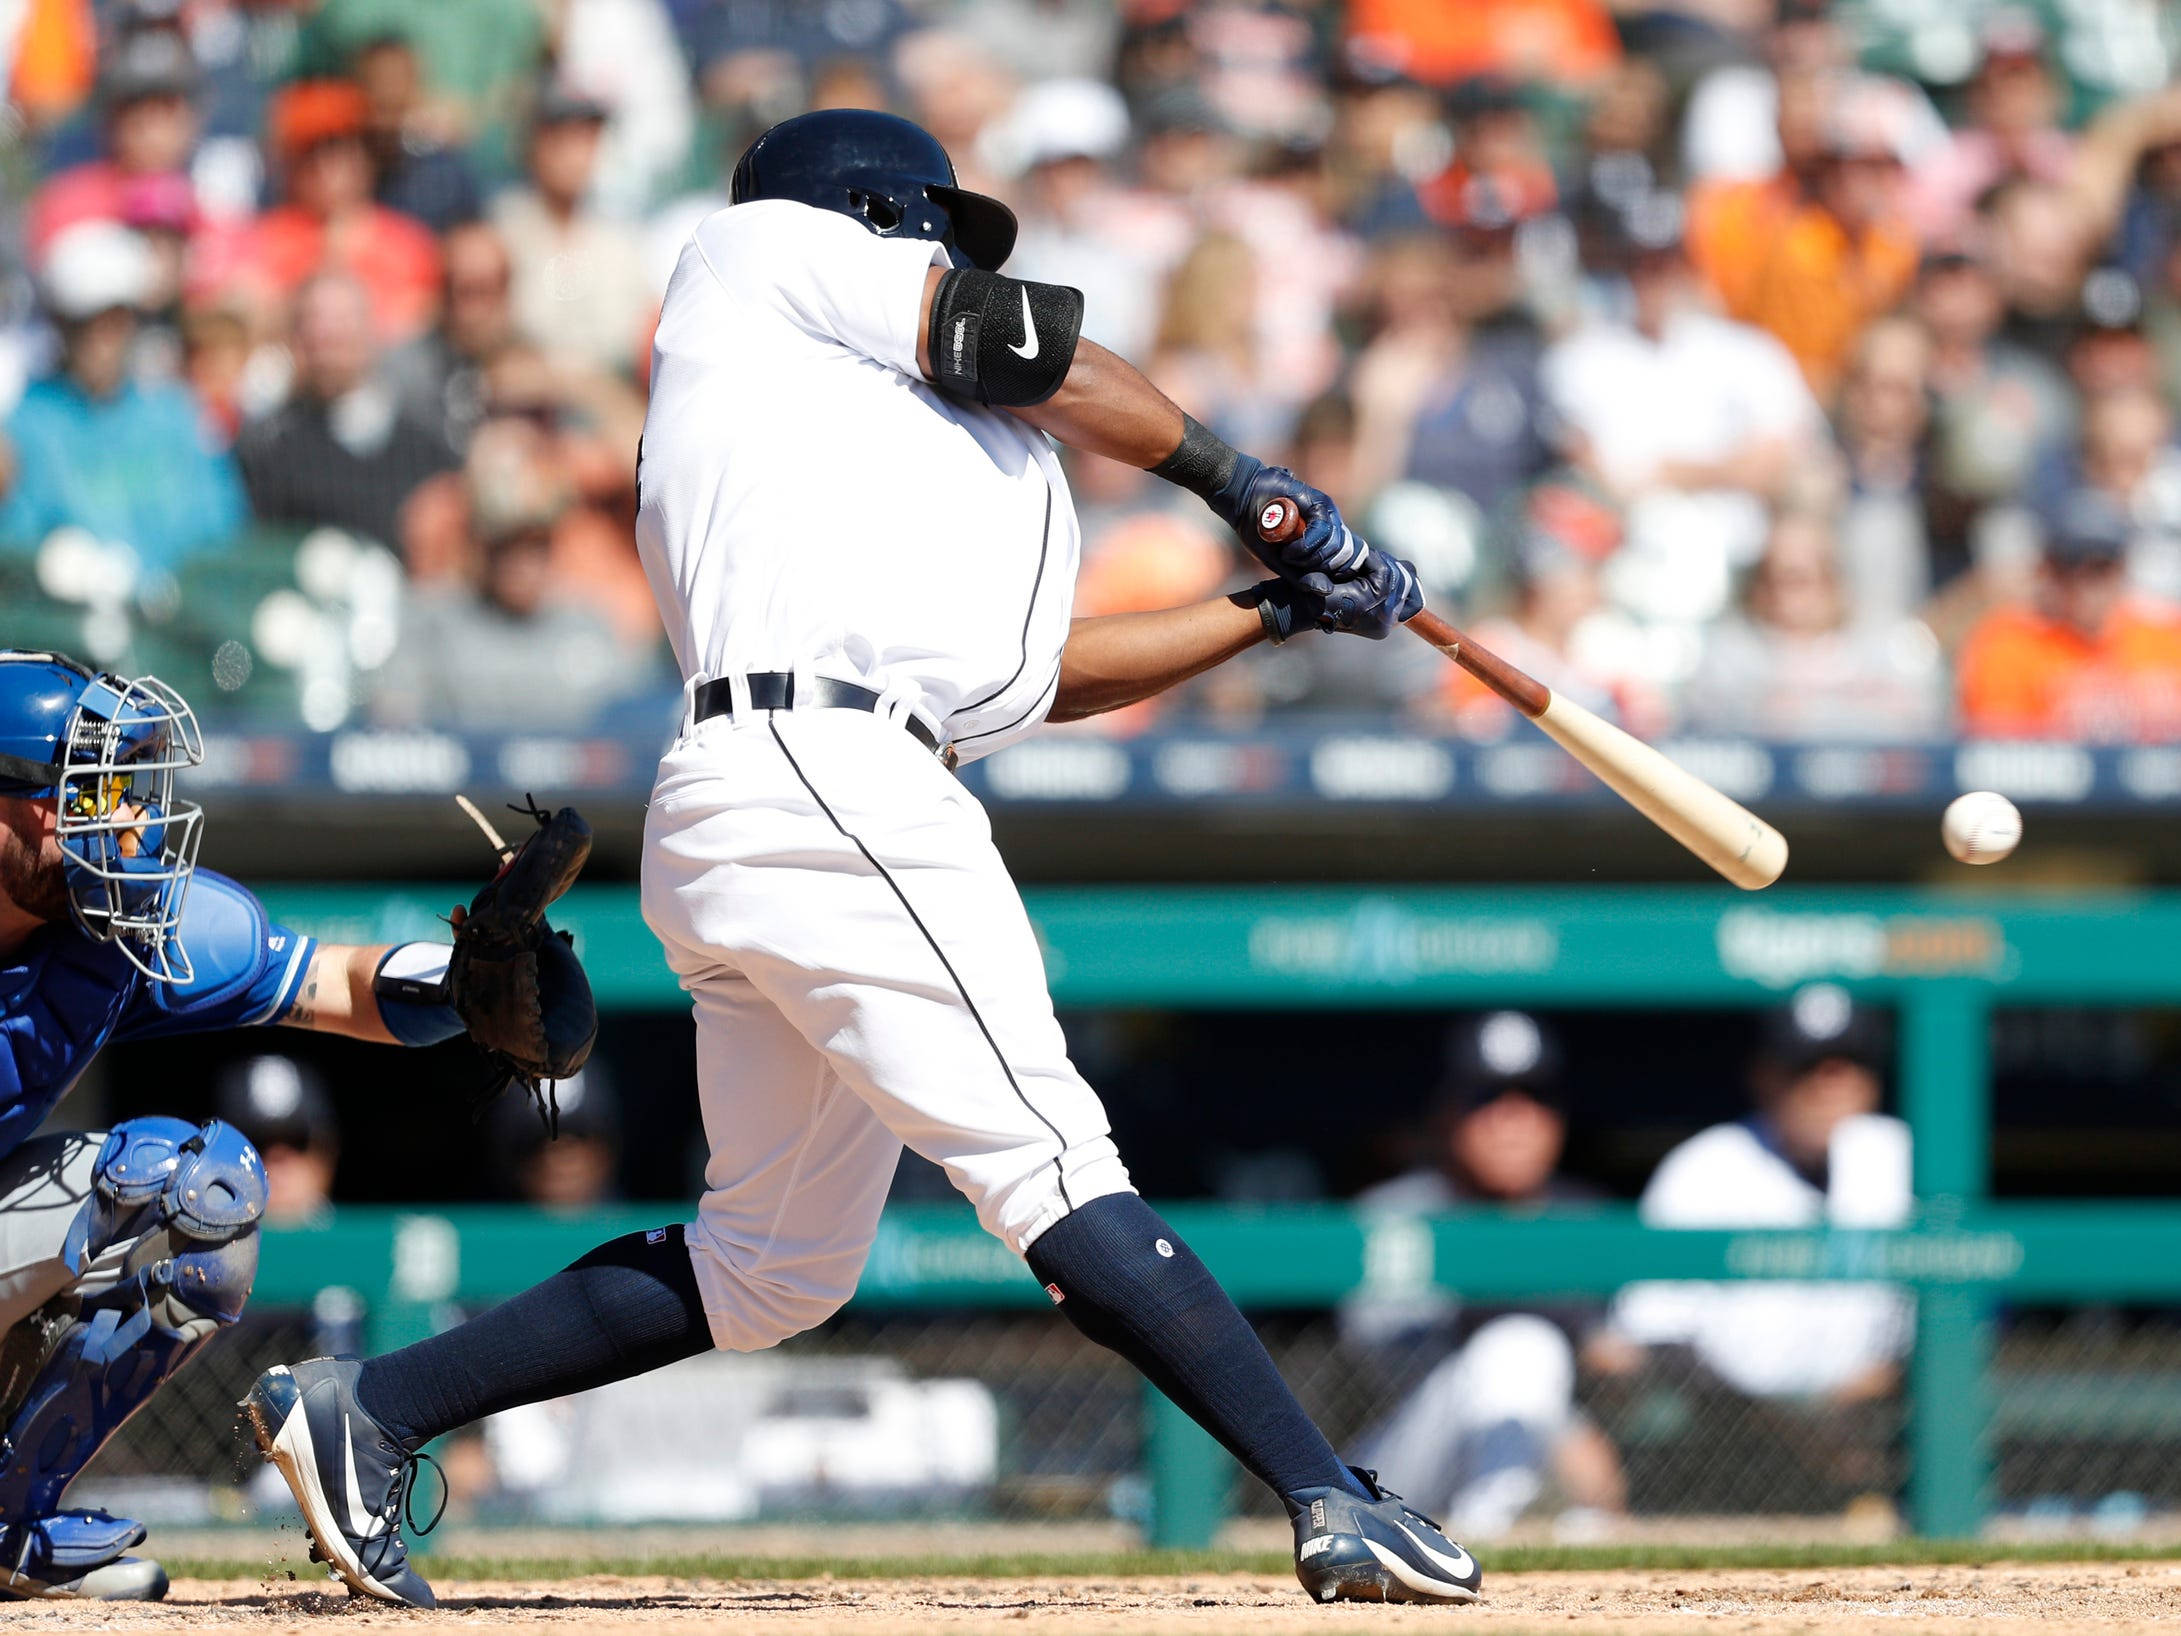 Tigers designated hitter Christin Stewart gets a hit for a single during the fourth inning on Sunday, Sept. 23, 2018, at Comerica Park.